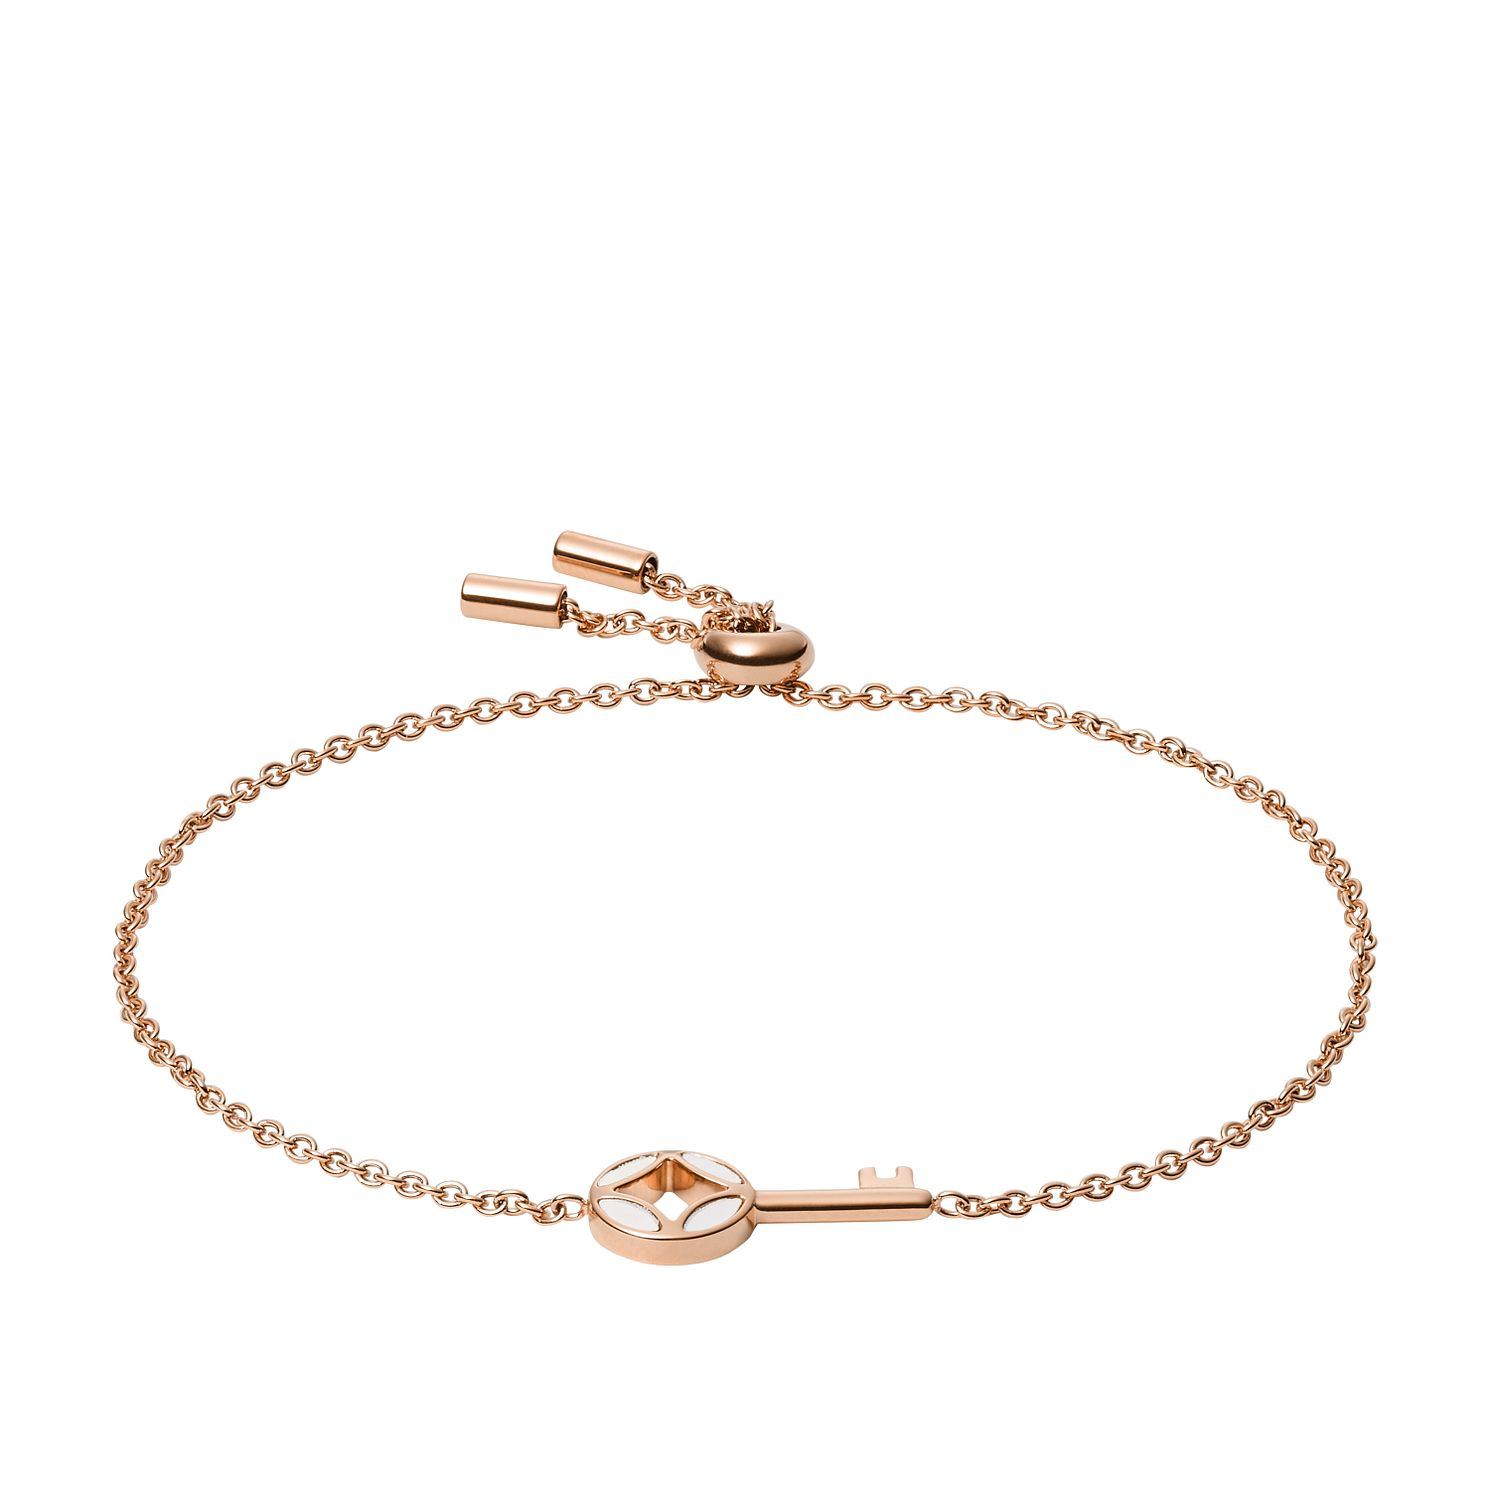 Fossil Classics Rose Gold Tone Key Bracelet - Product number 5959721